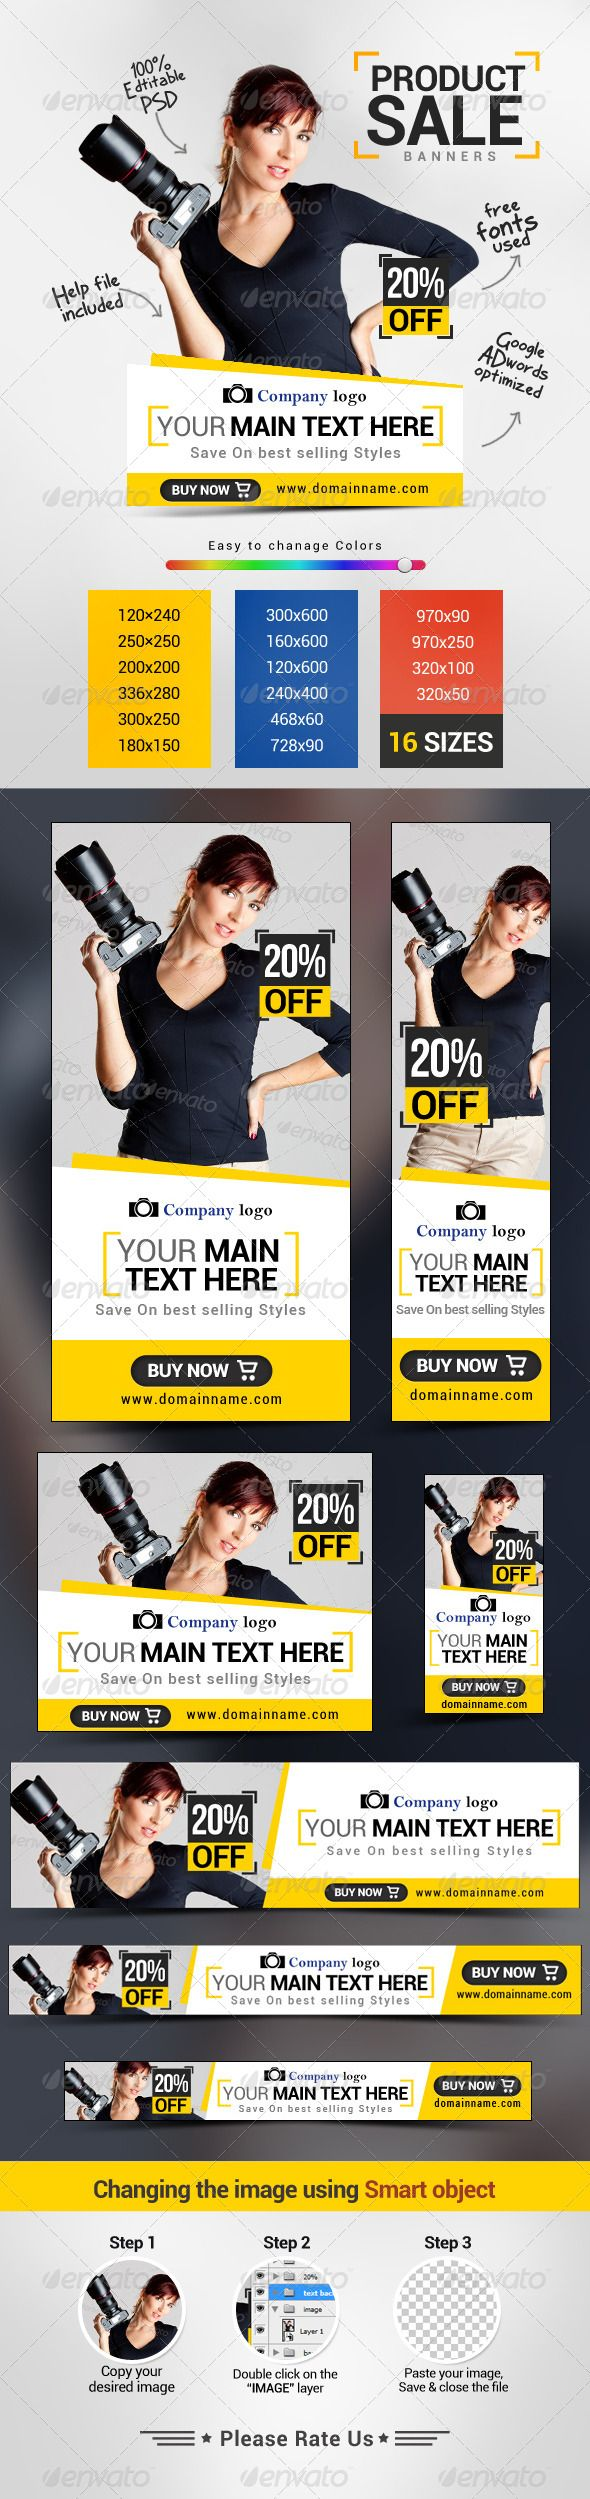 Product Sale Web Banners Template PSD | Buy and Download: http://graphicriver.net/item/product-sale-banners/7800954?WT.ac=category_thumb&WT.z_author=doto&ref=ksioks